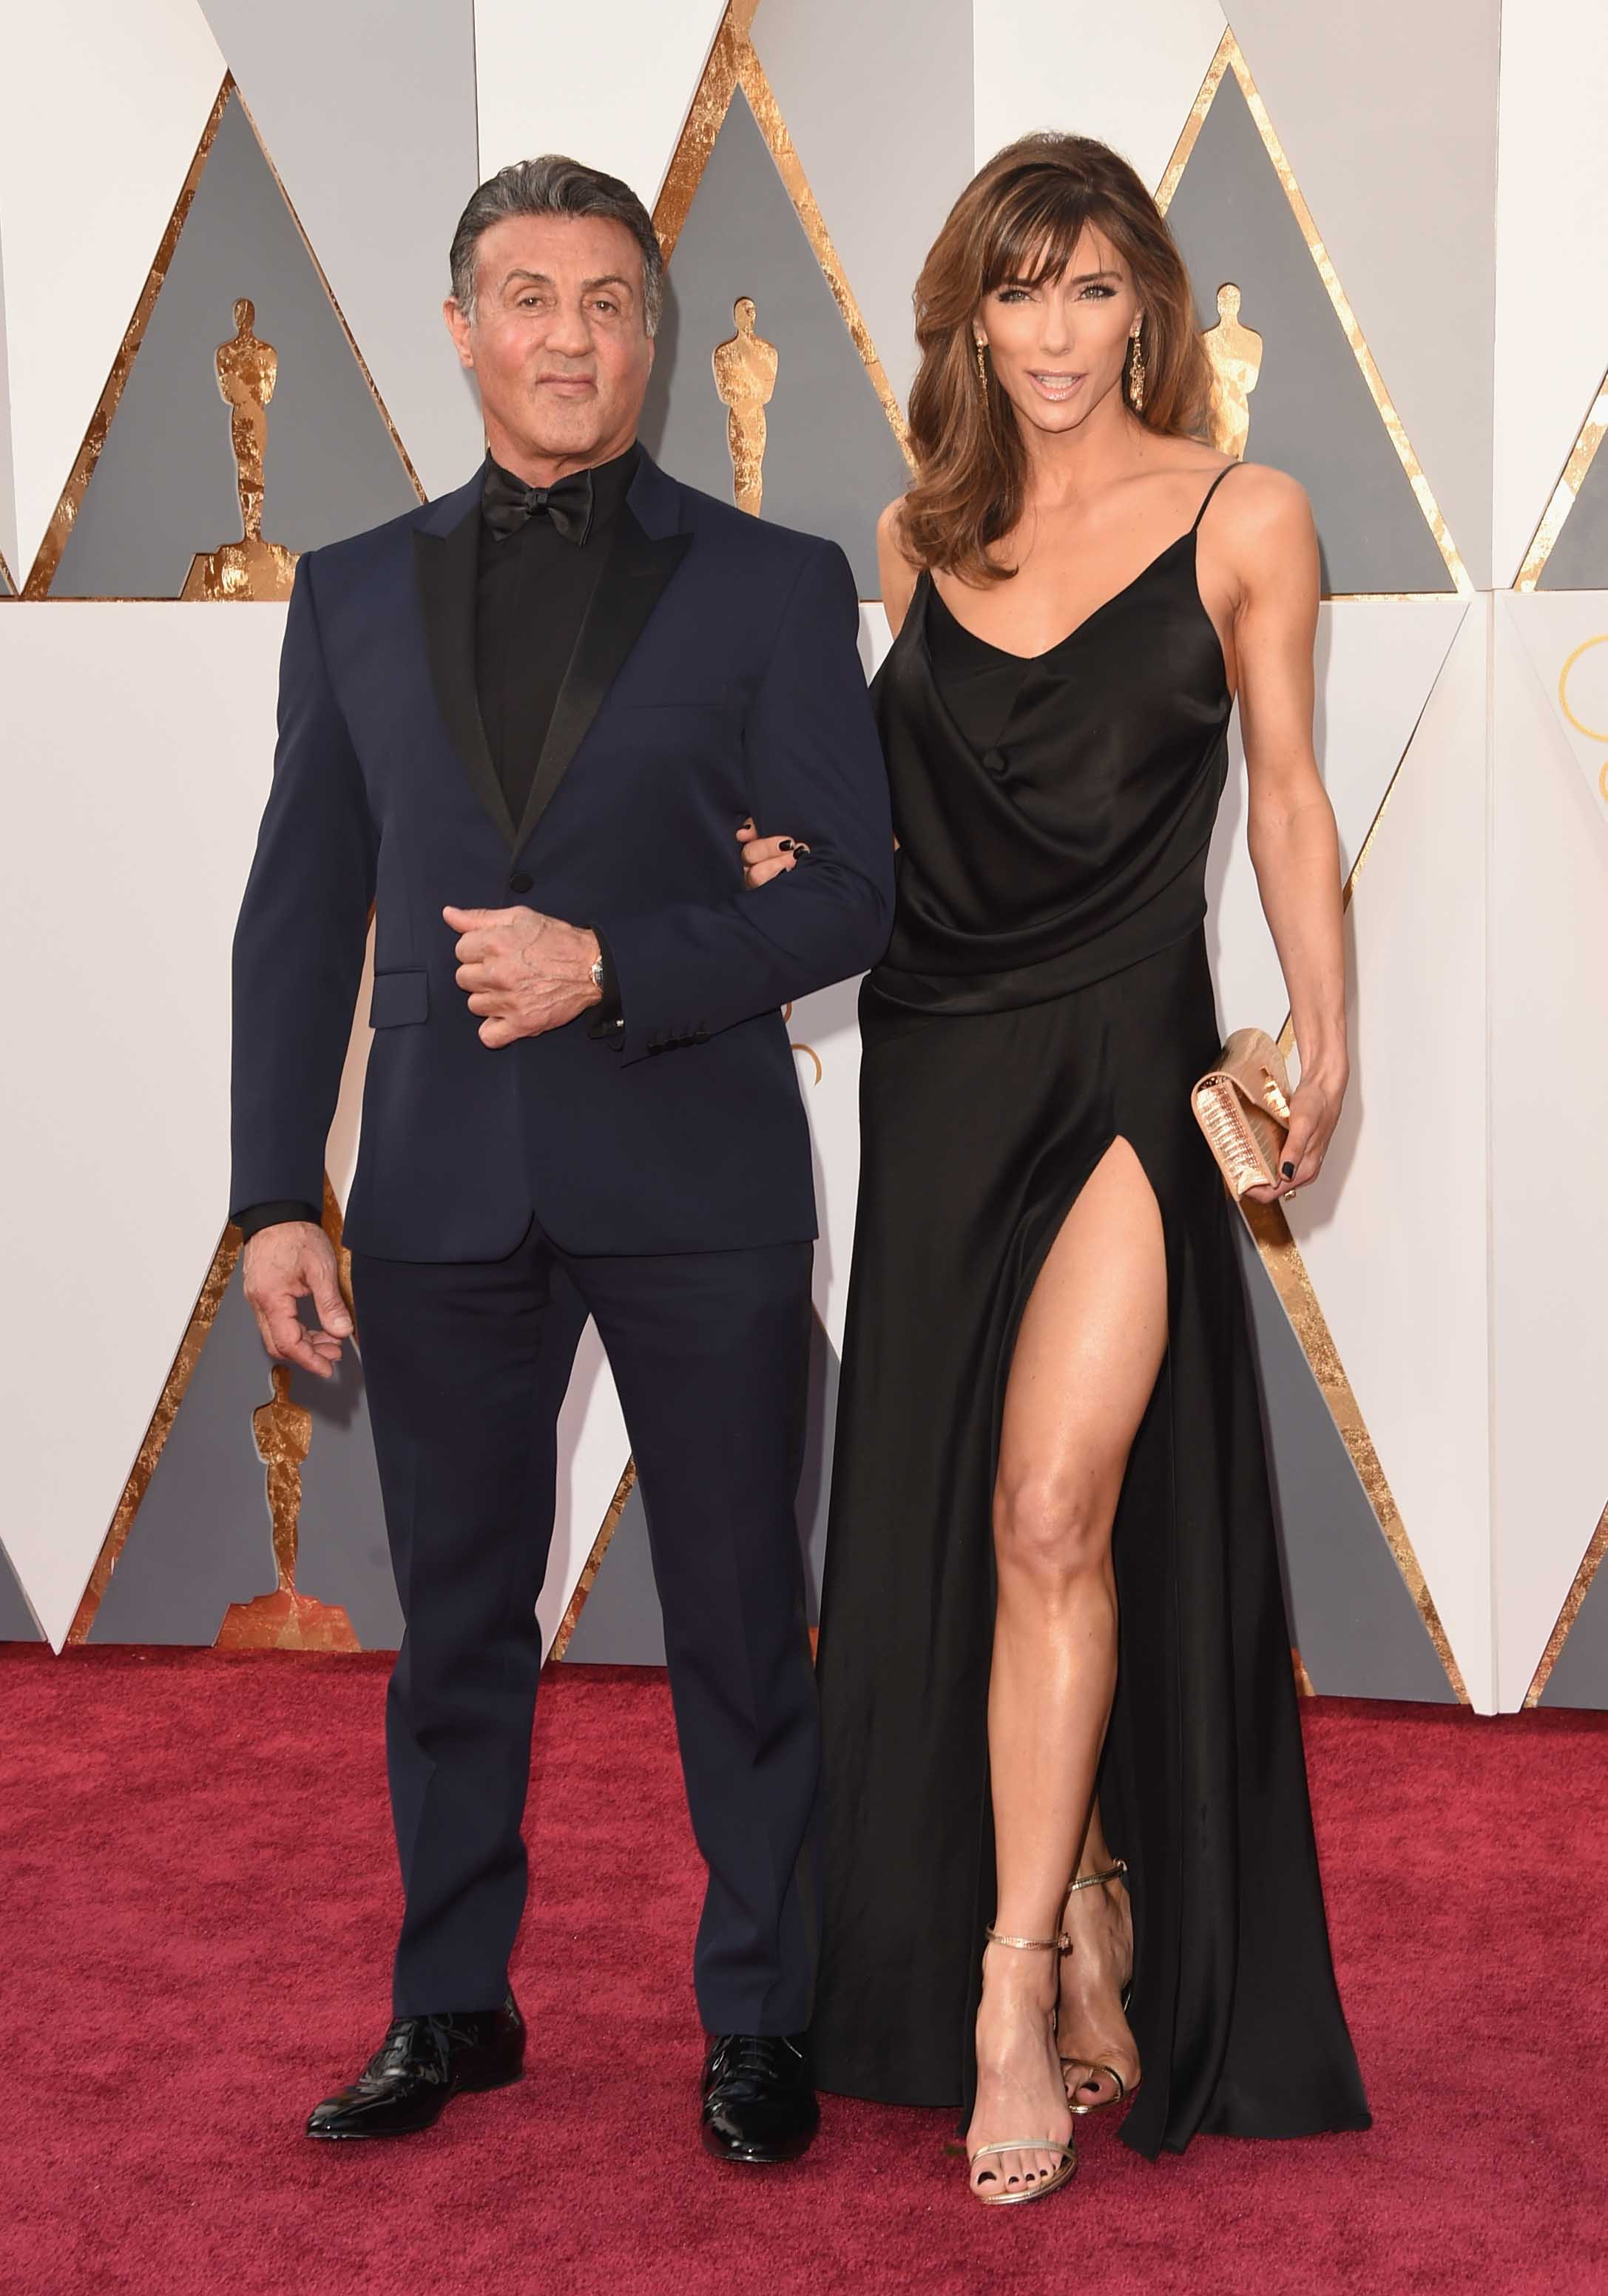 Sylvester Stallone And Jennifer Flavin Walk The Red Carpet ...